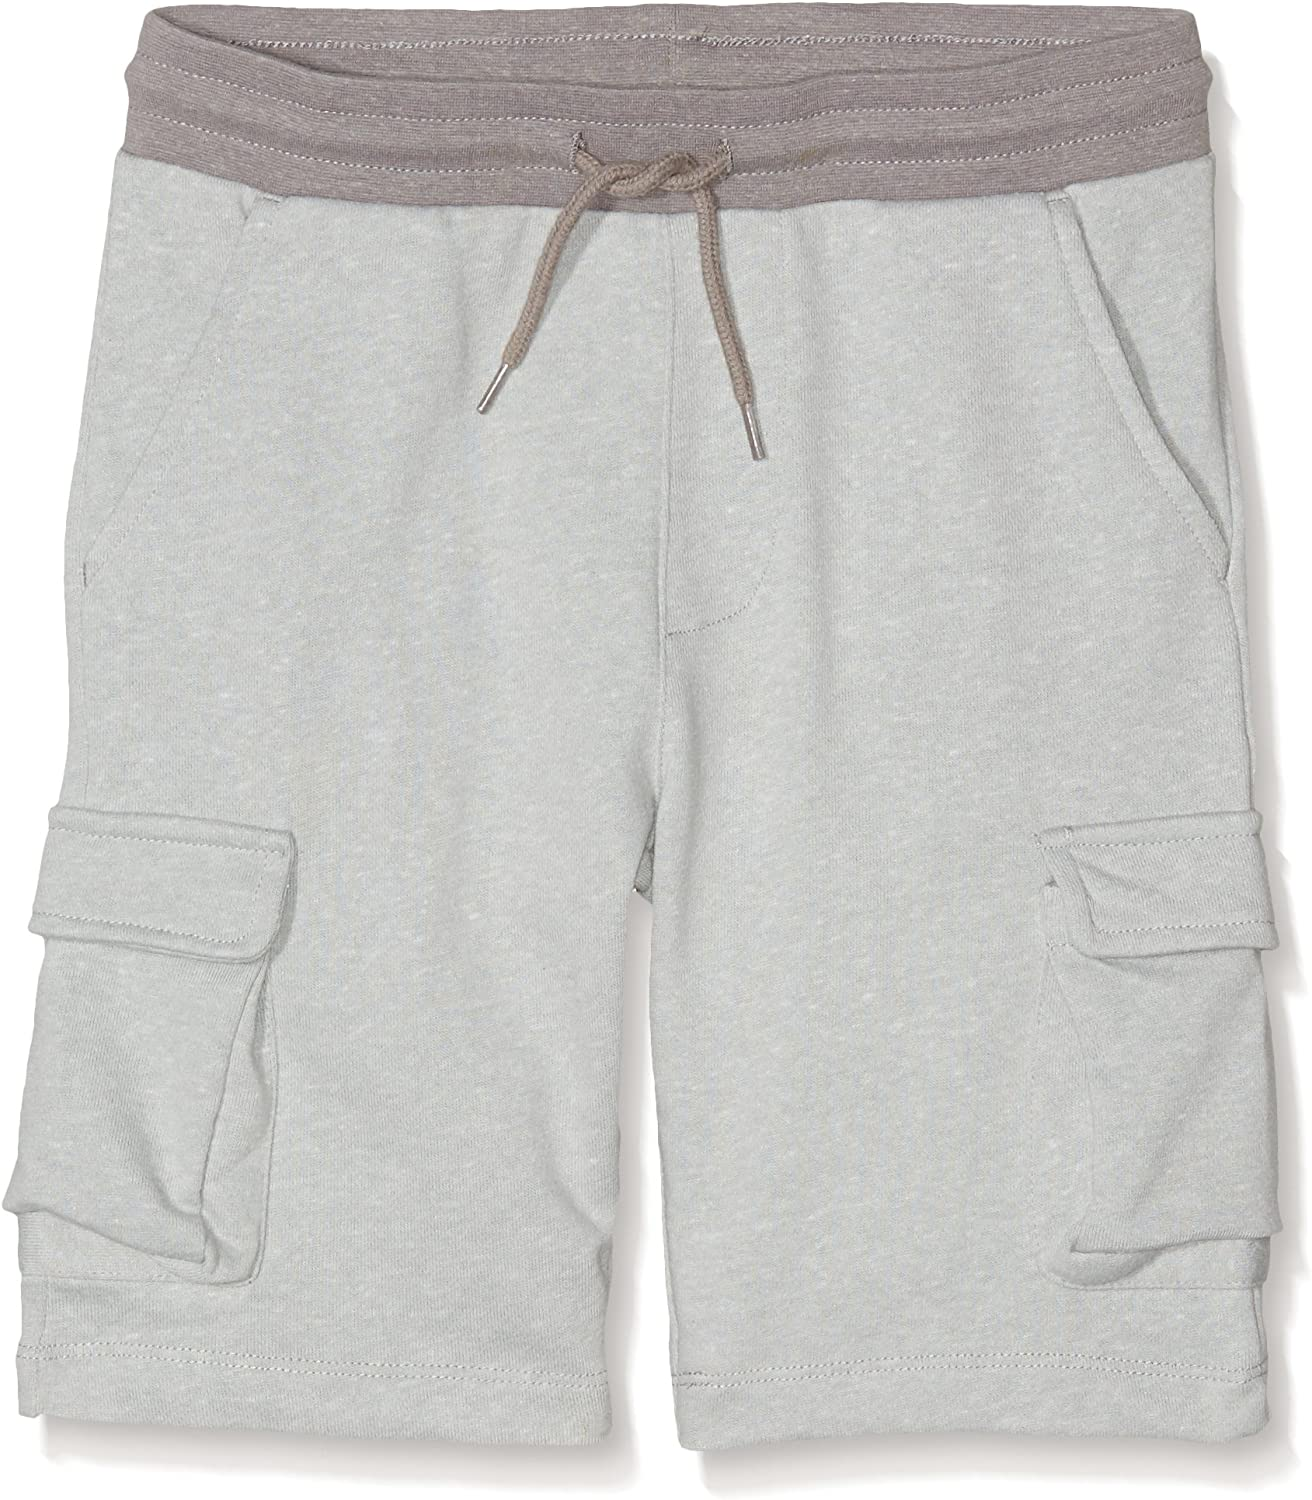 YoungSoul Kids Cargo Shorts Summer Elasticated Waist Pants 5-14 Years